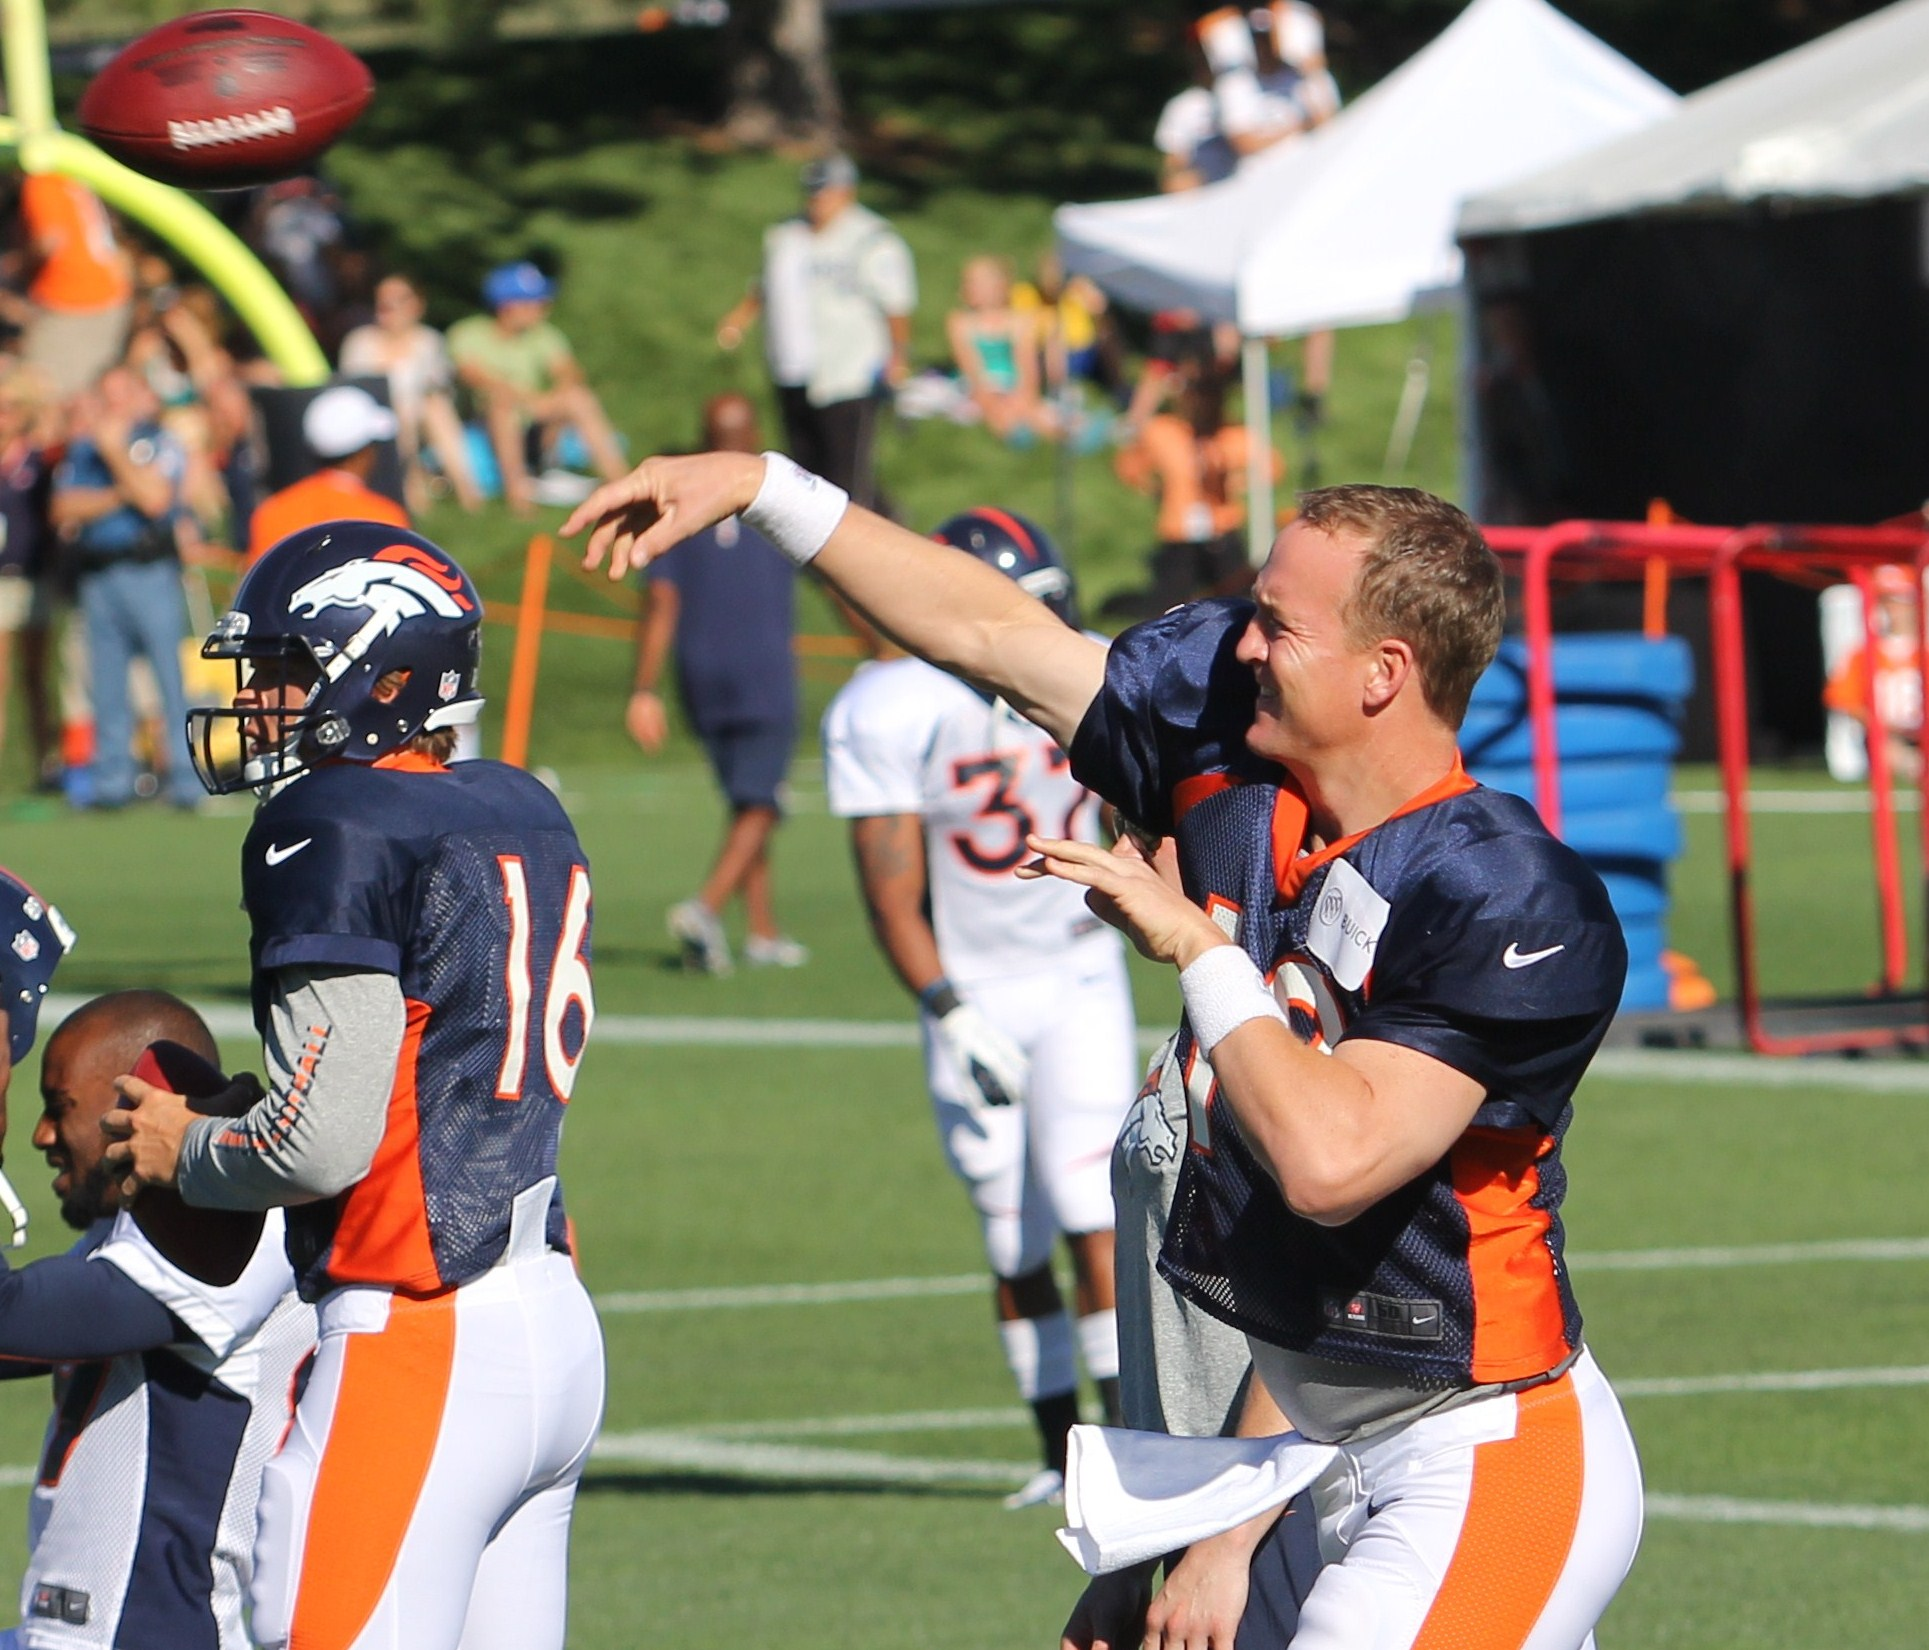 Denver Broncos 2012 Training Camp: Day 3